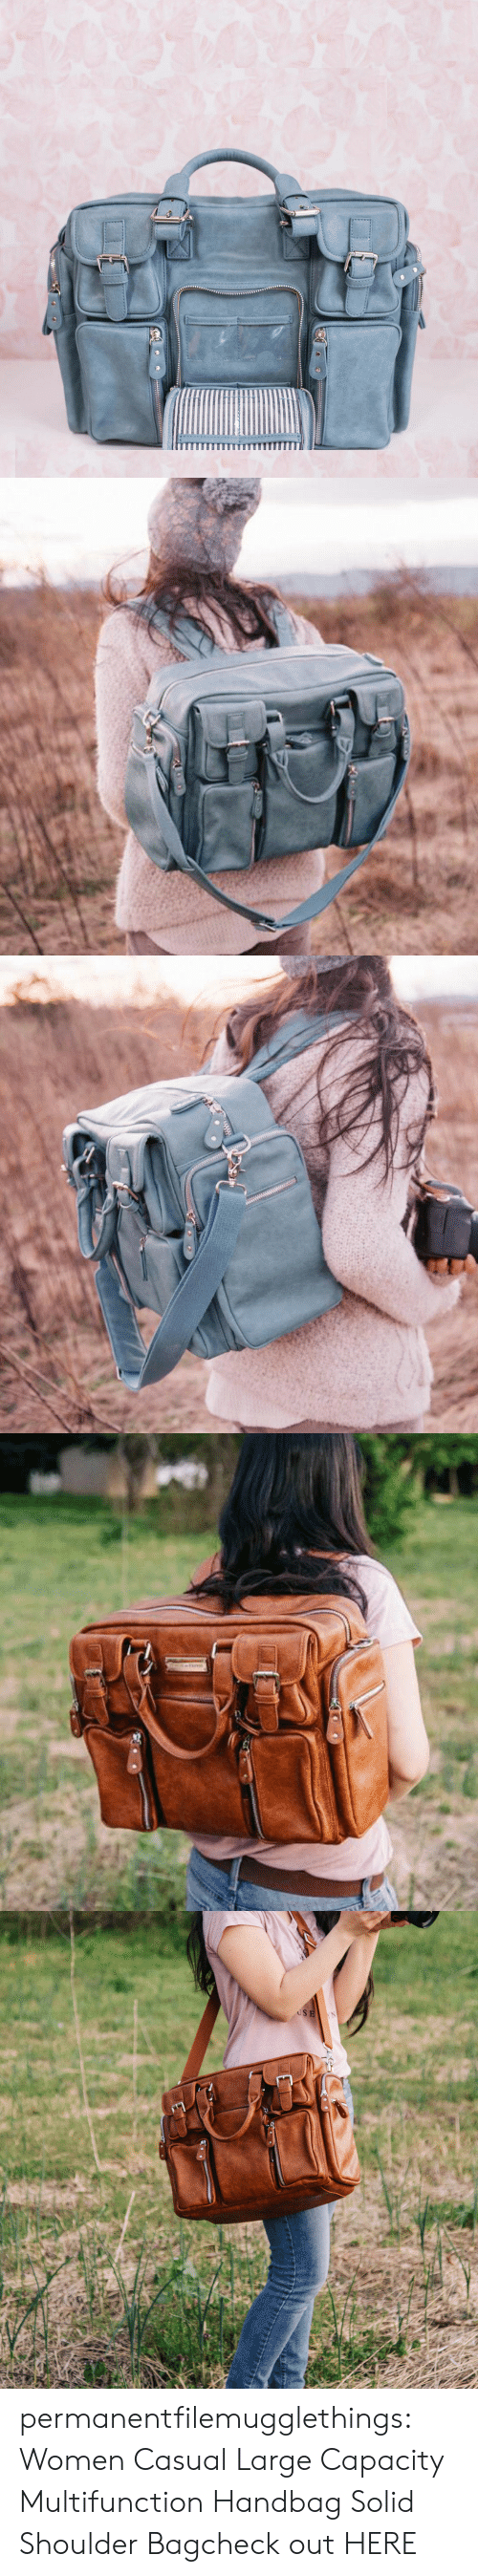 Tumblr, Blog, and Women: Z00   USE permanentfilemugglethings:  Women Casual Large Capacity Multifunction Handbag Solid Shoulder Bagcheck out HERE